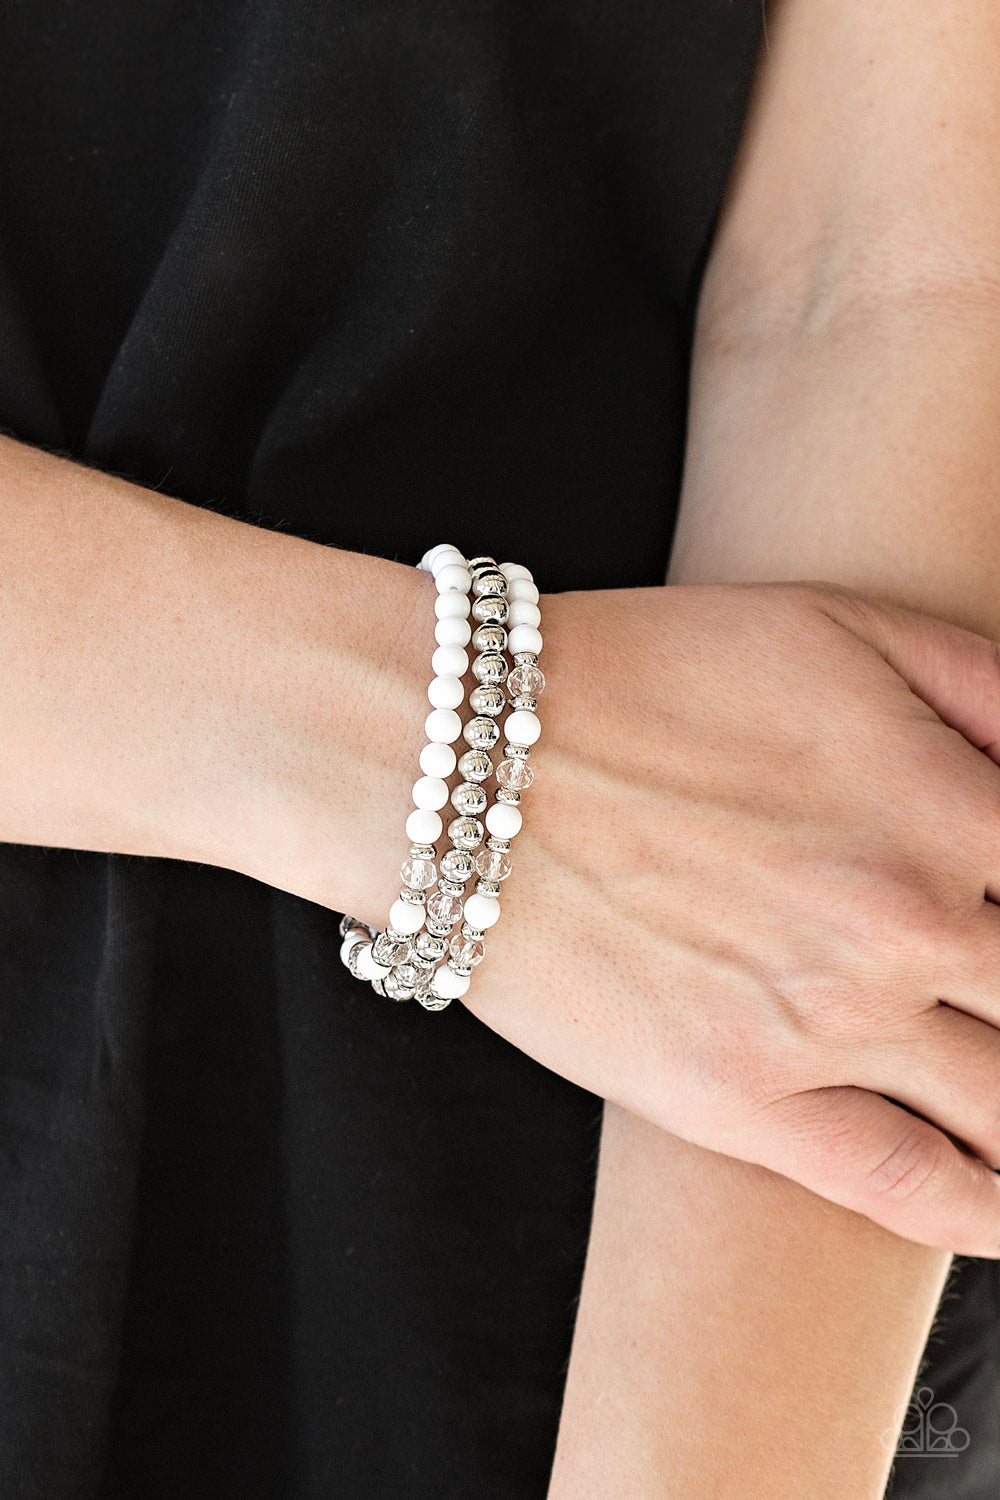 Irresistibilly Irresistible -  White Bracelet